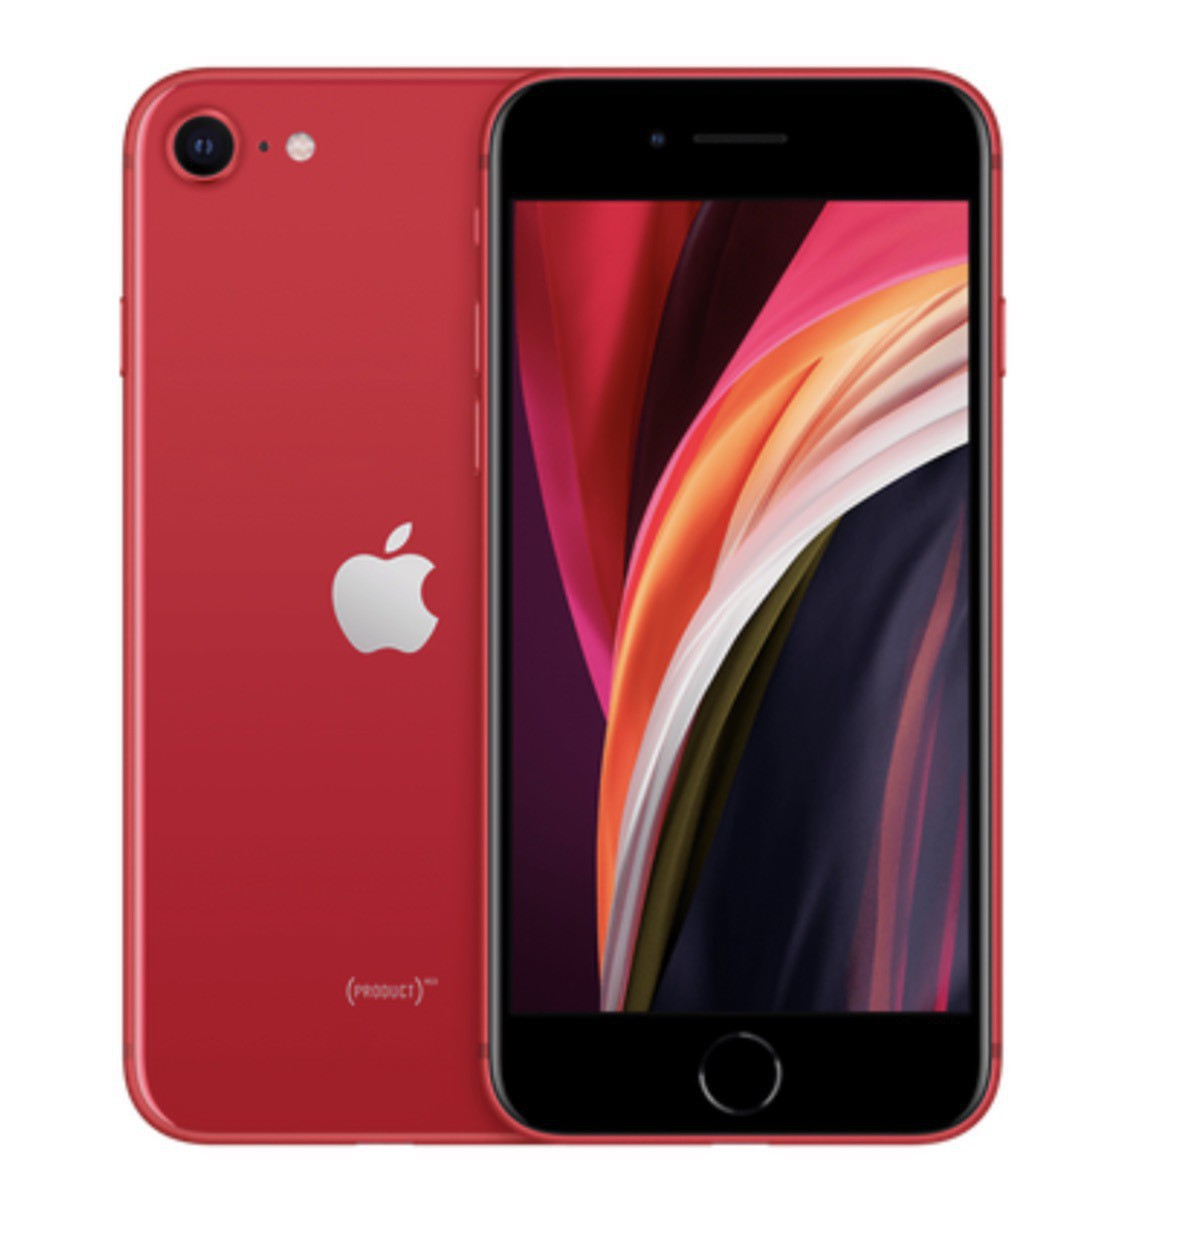 A red iPhone SE 2